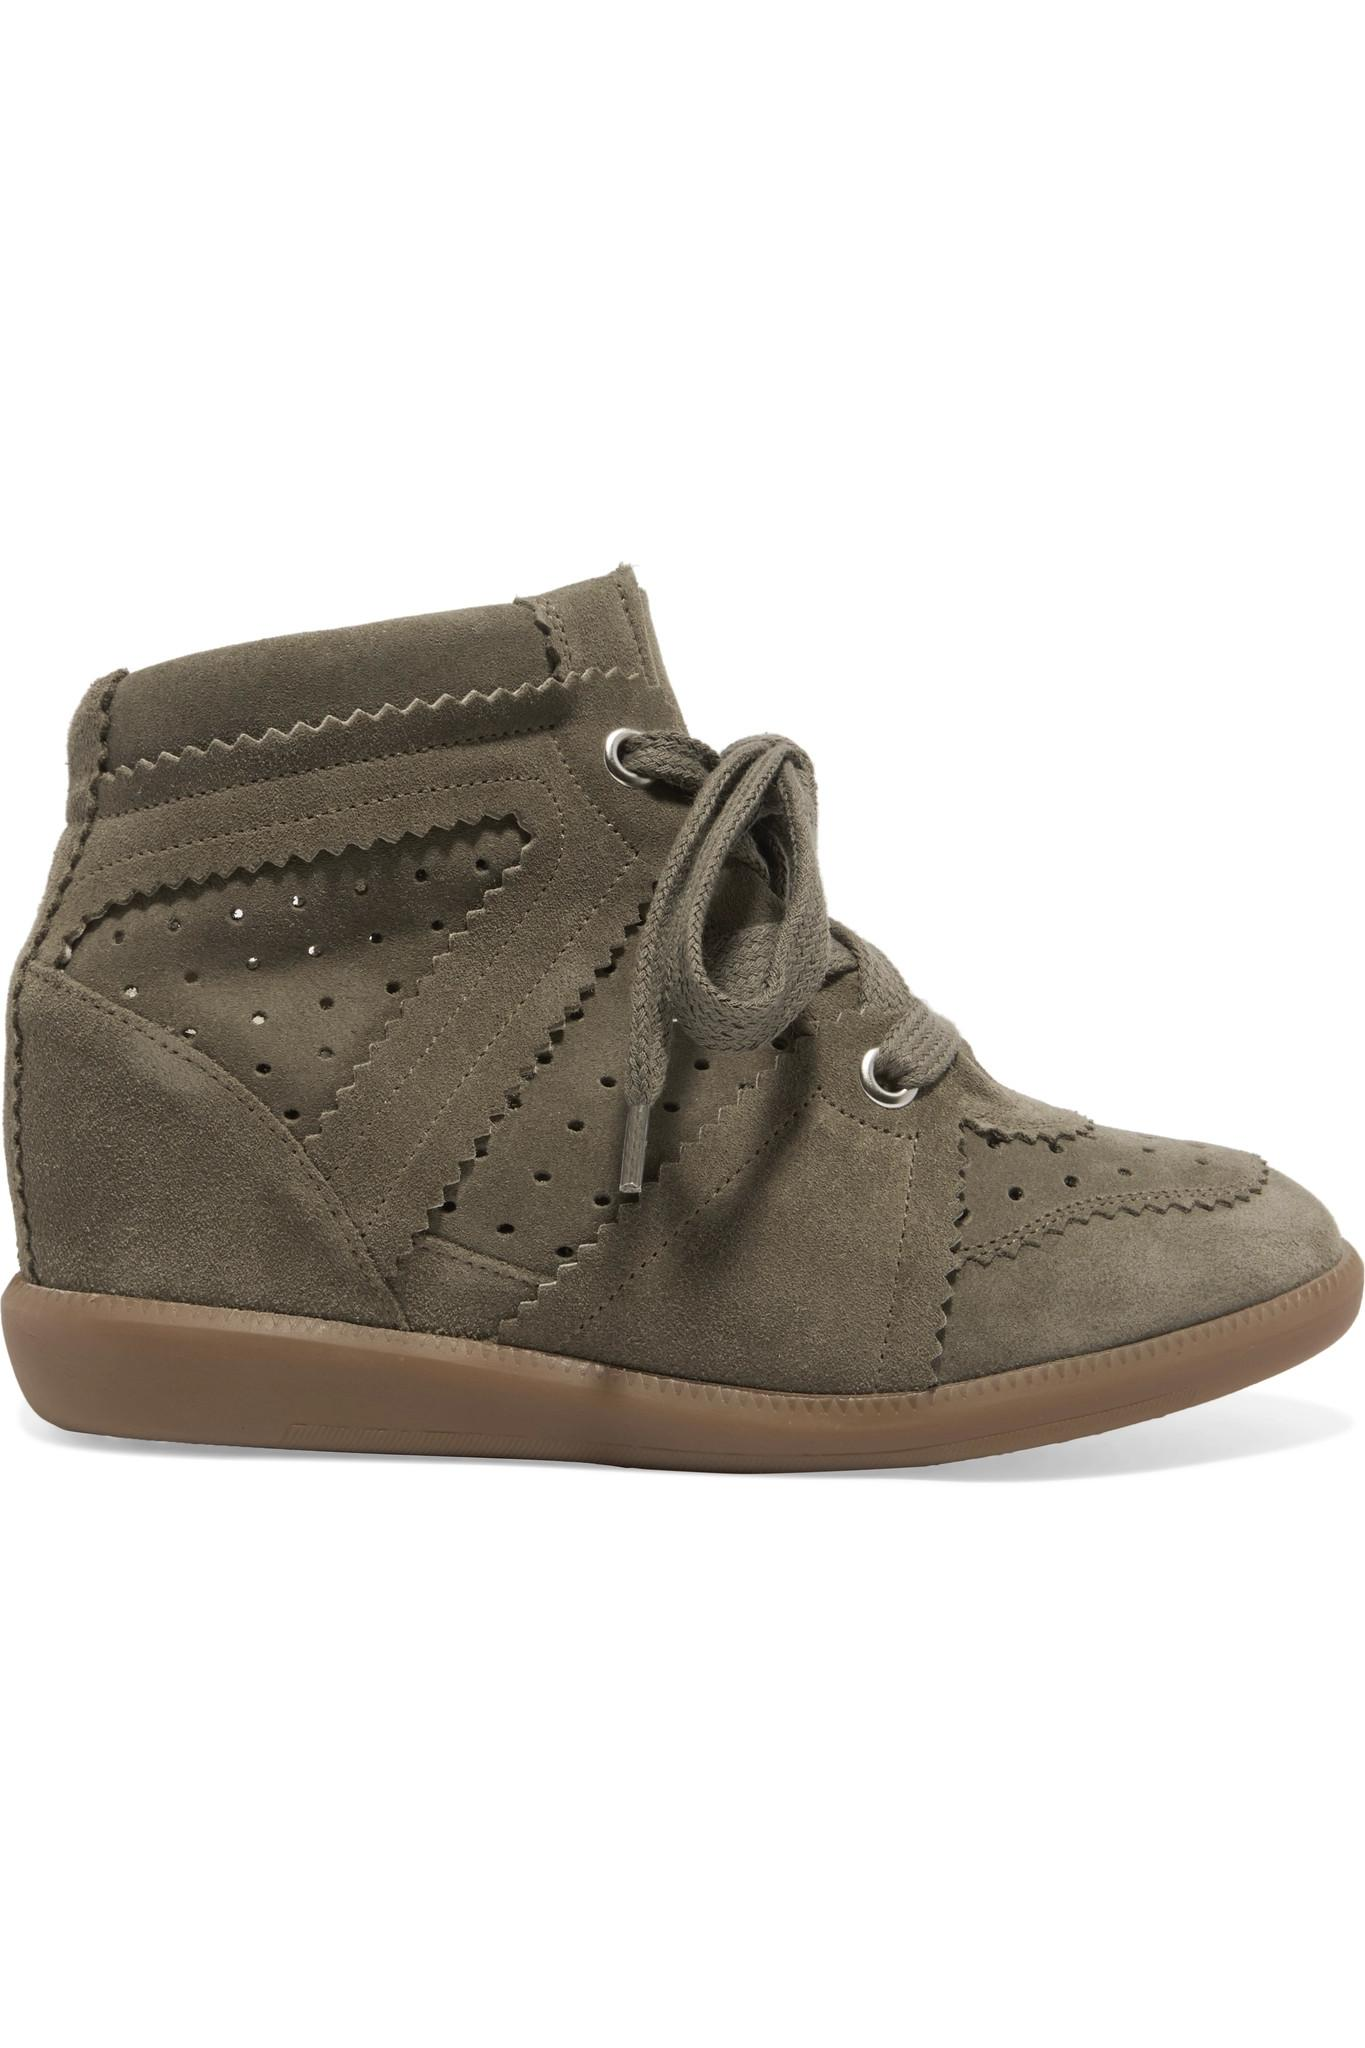 isabel marant toile bobby suede wedge trainers in green lyst. Black Bedroom Furniture Sets. Home Design Ideas